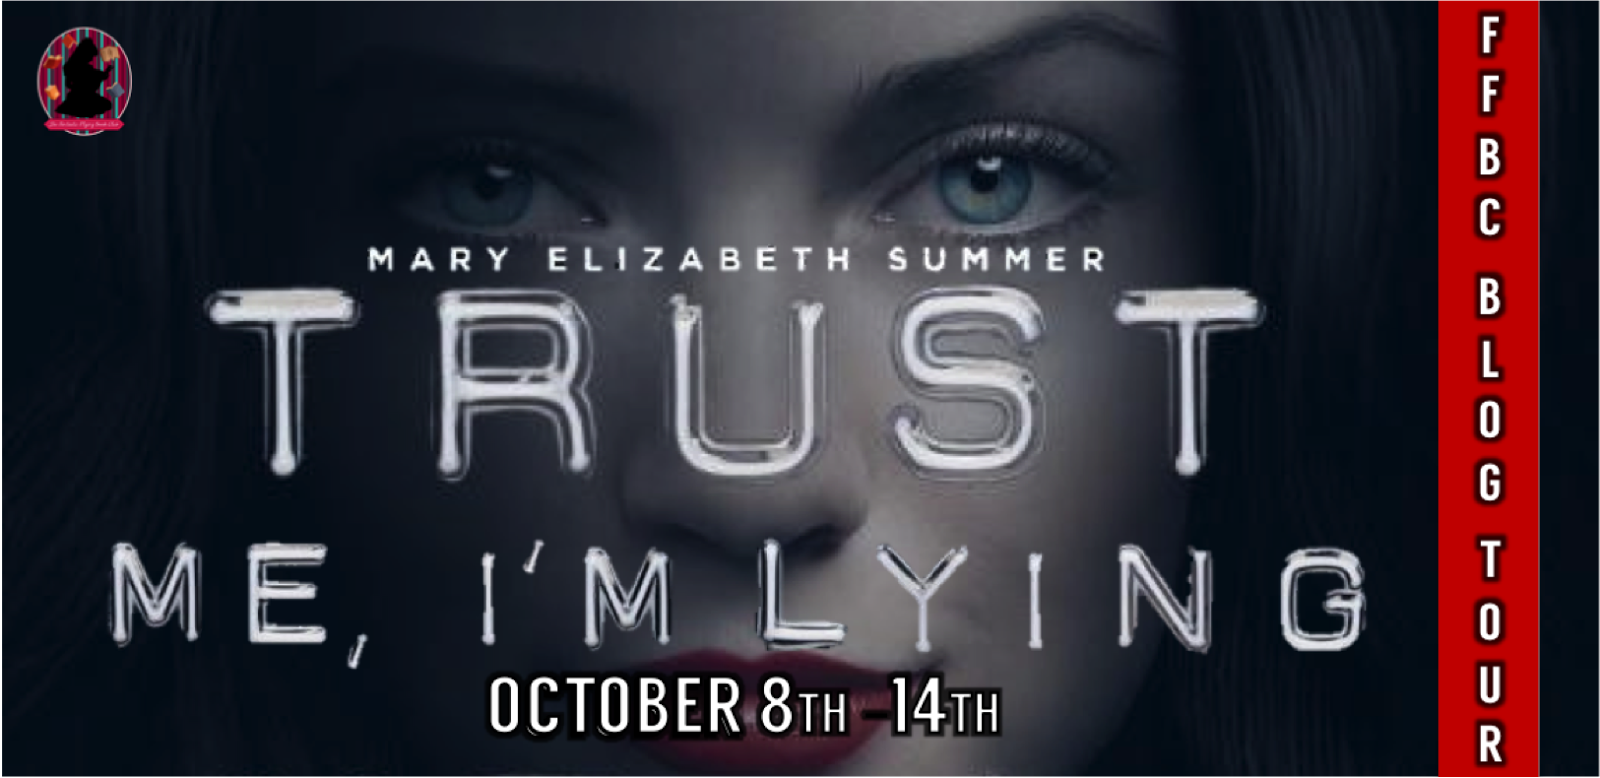 http://theunofficialaddictionbookfanclub.blogspot.com/2014/09/ffbc-blog-tour-trust-me-im-lying-by.html